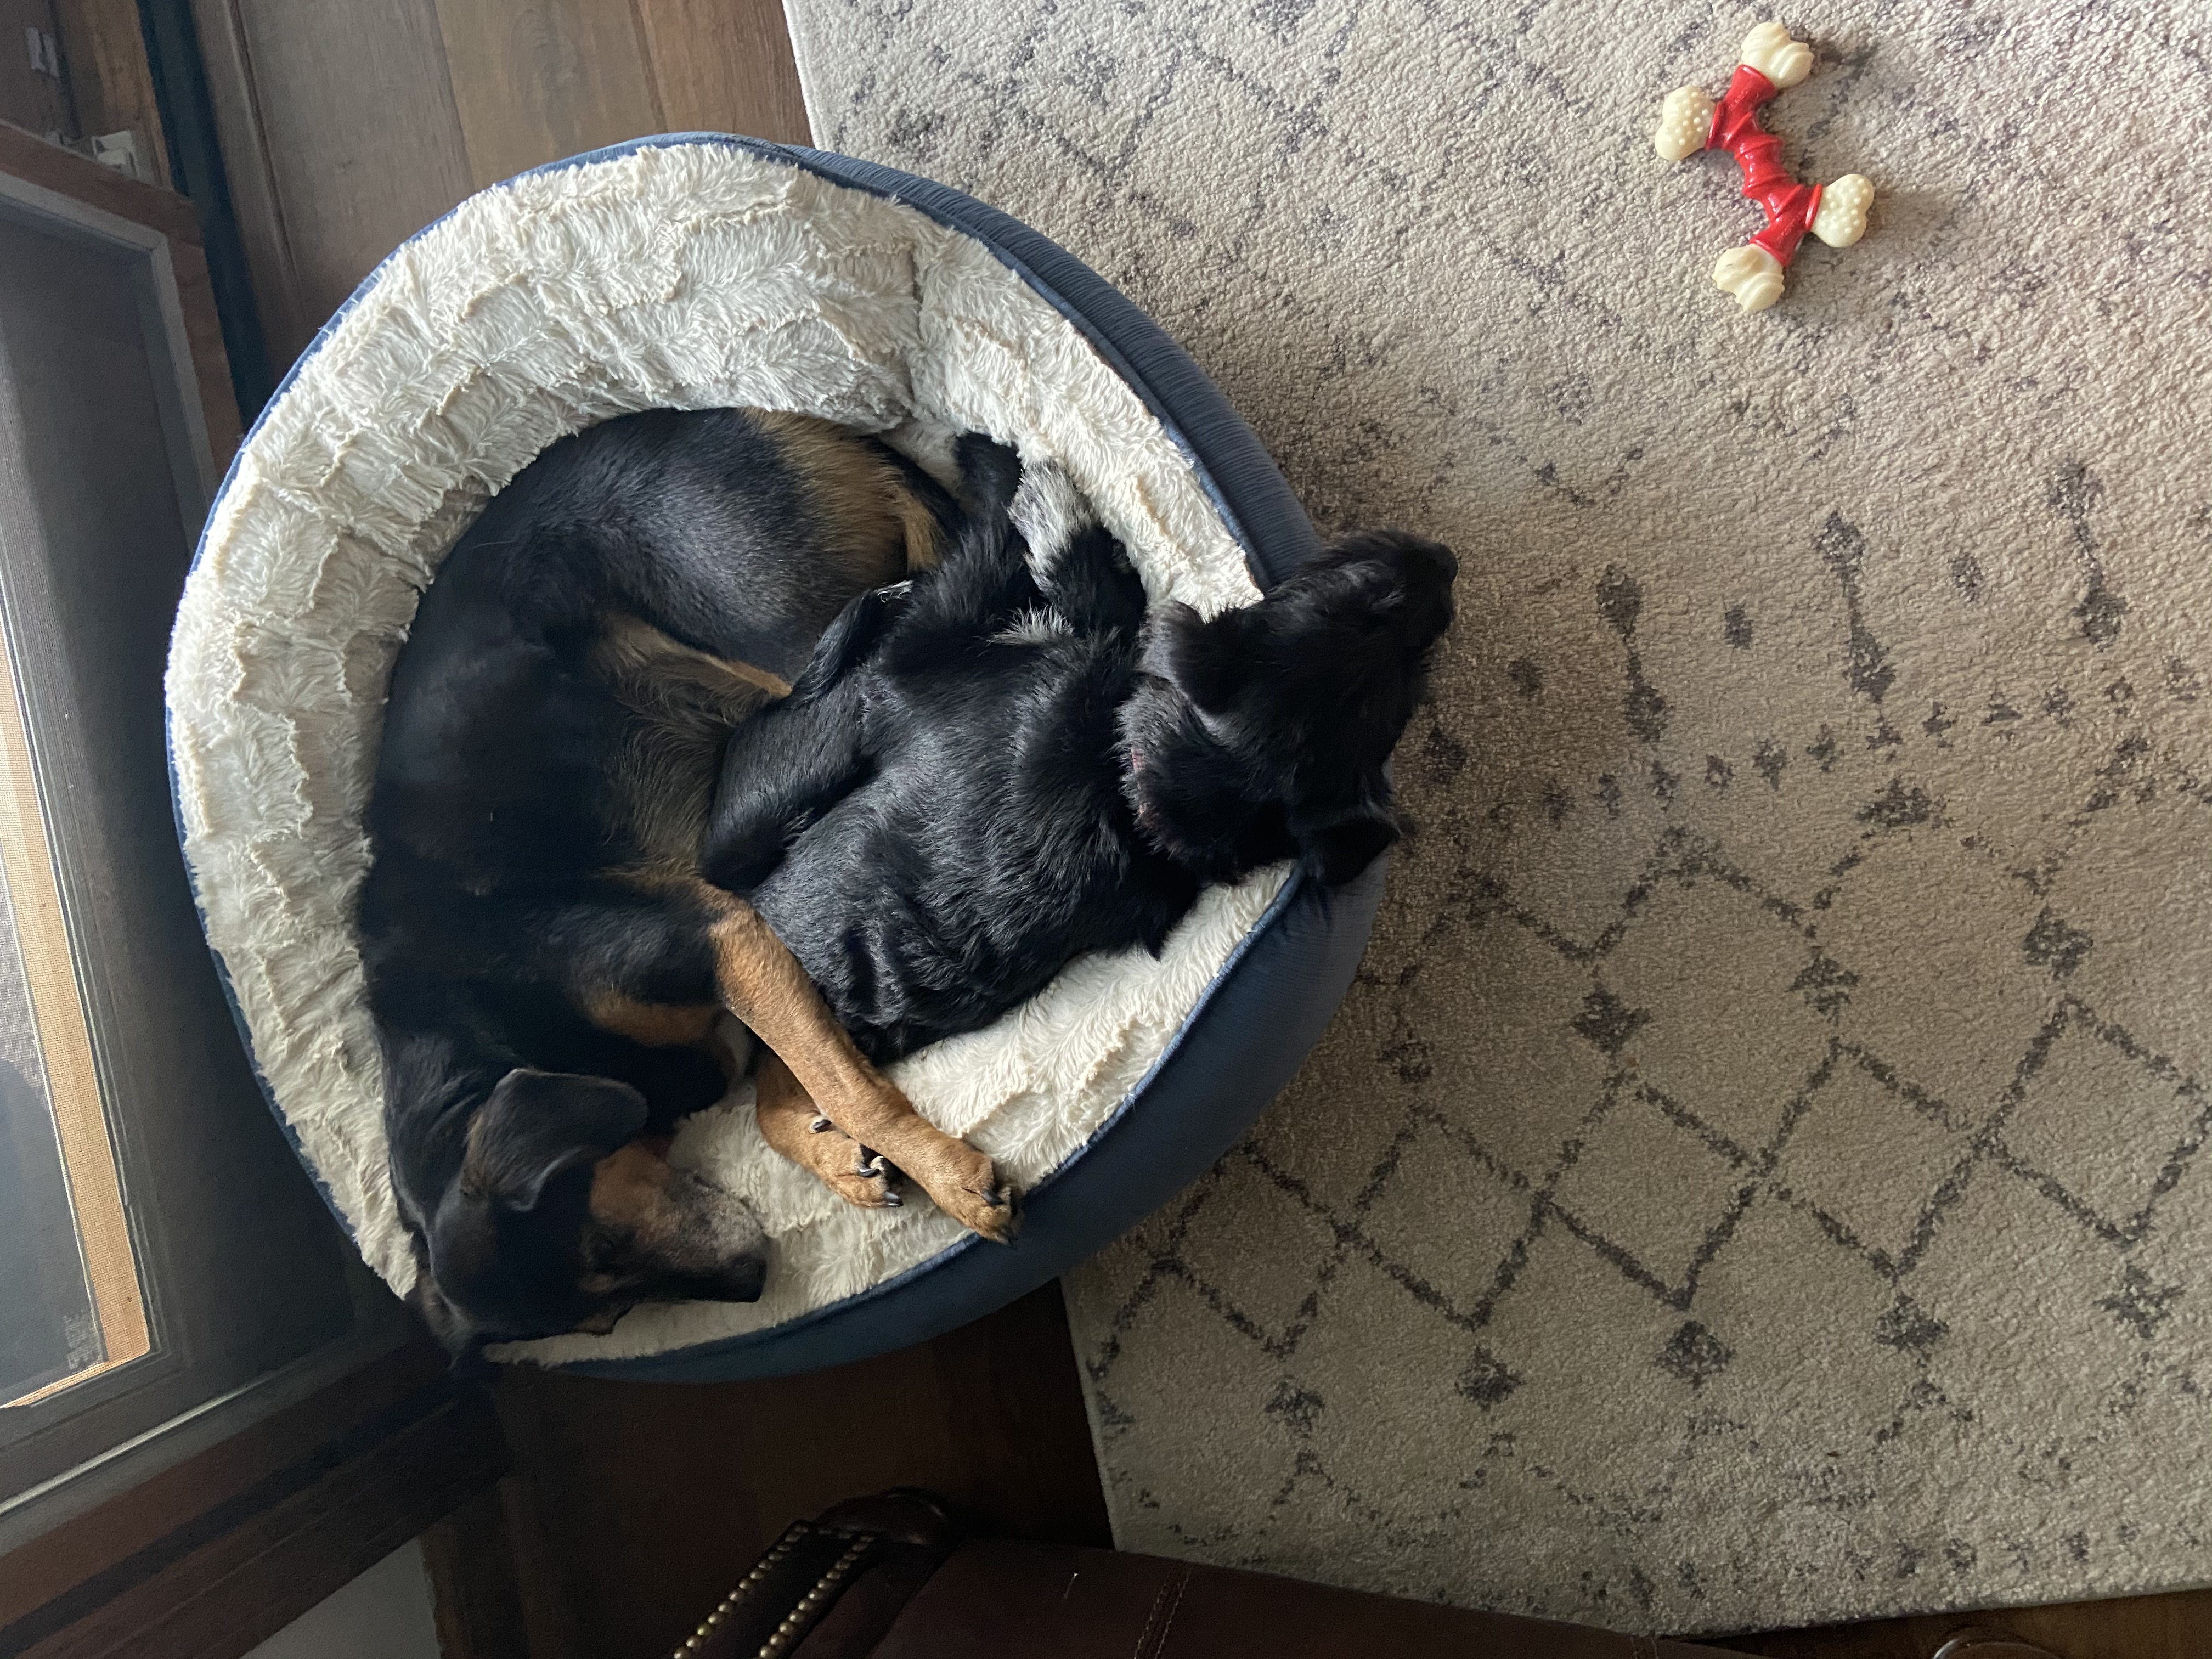 Two dogs, one older and black and tan, the other a black puppy sleep together in a round dog bed